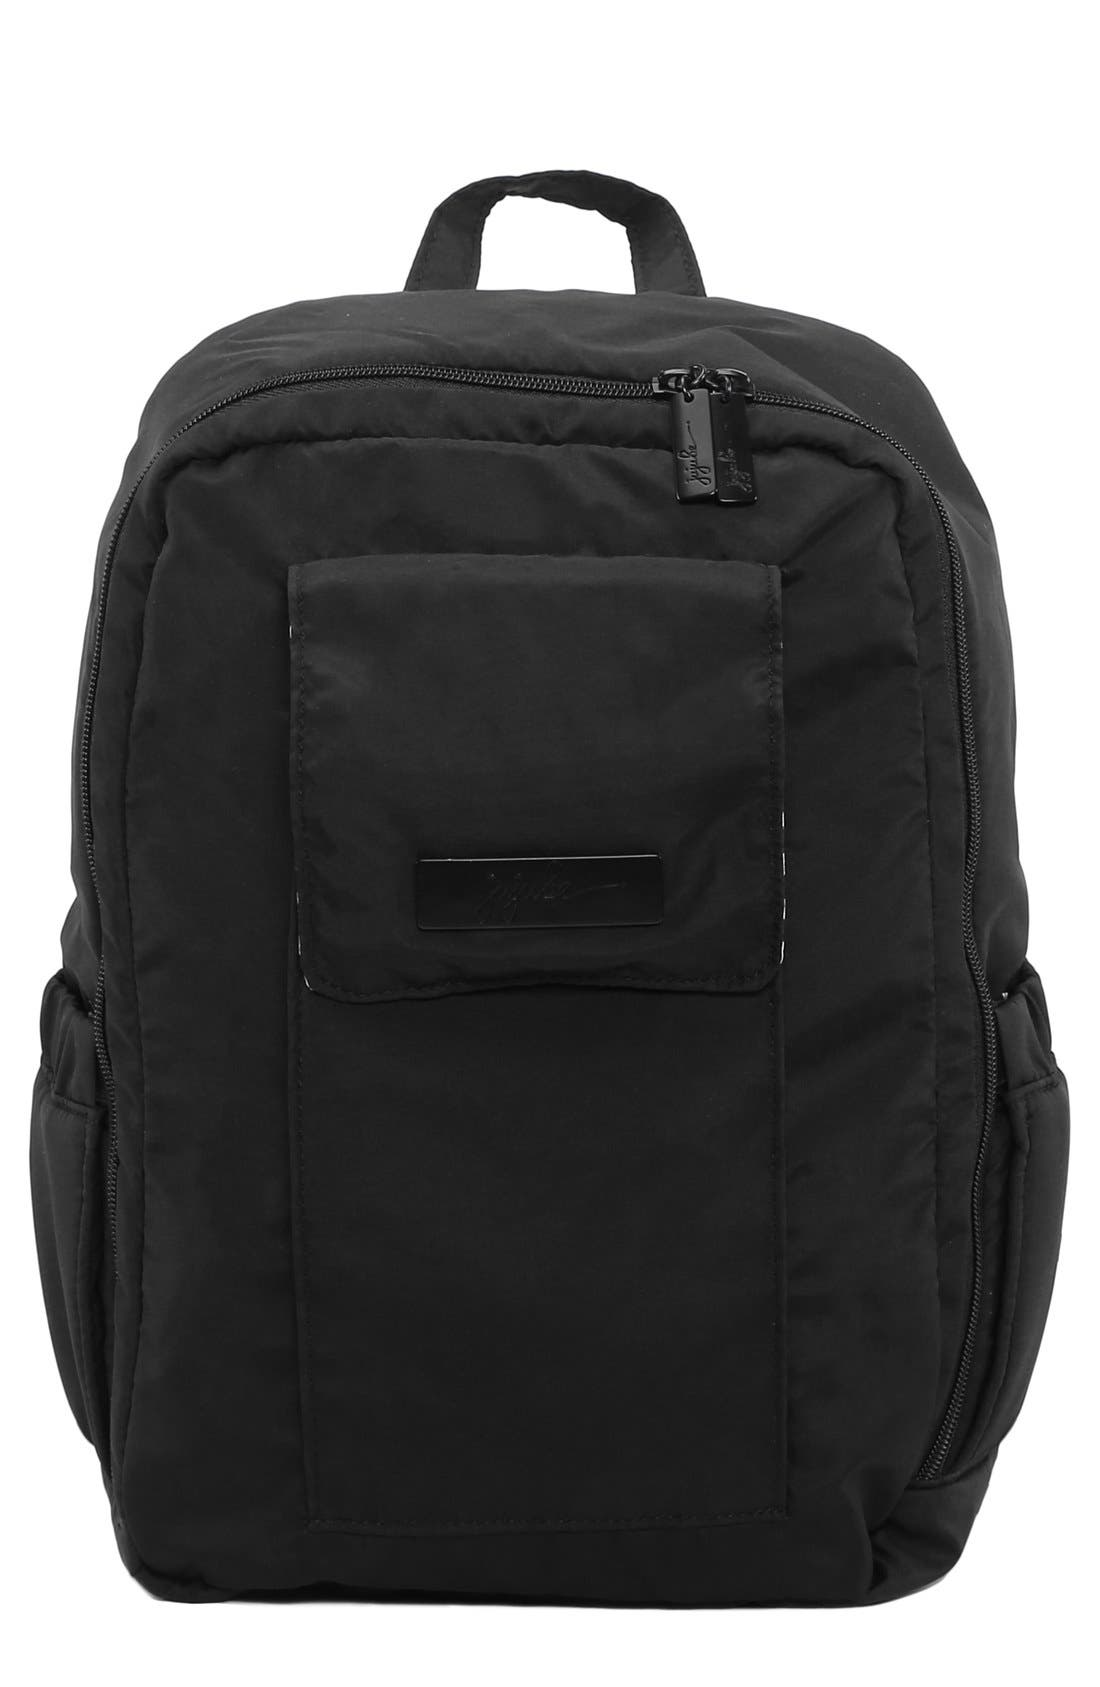 Main Image - Ju-Ju-Be 'Mini Be - Onyx Collection' Backpack